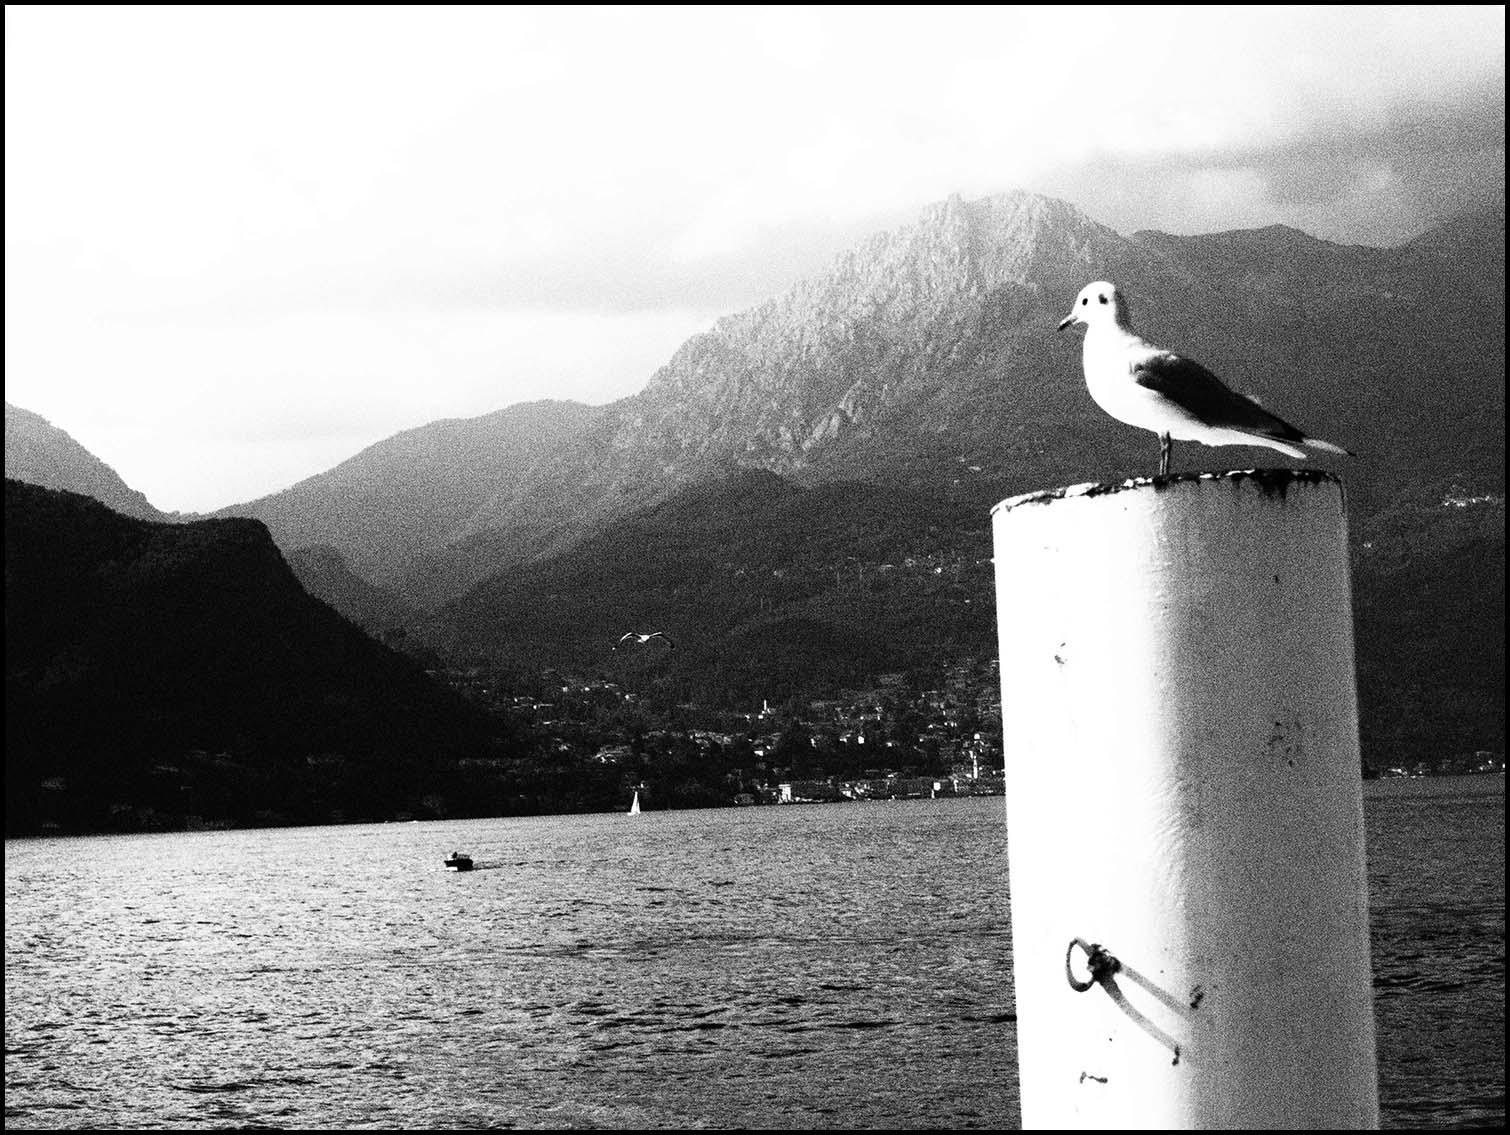 Pigeon in Bellagio